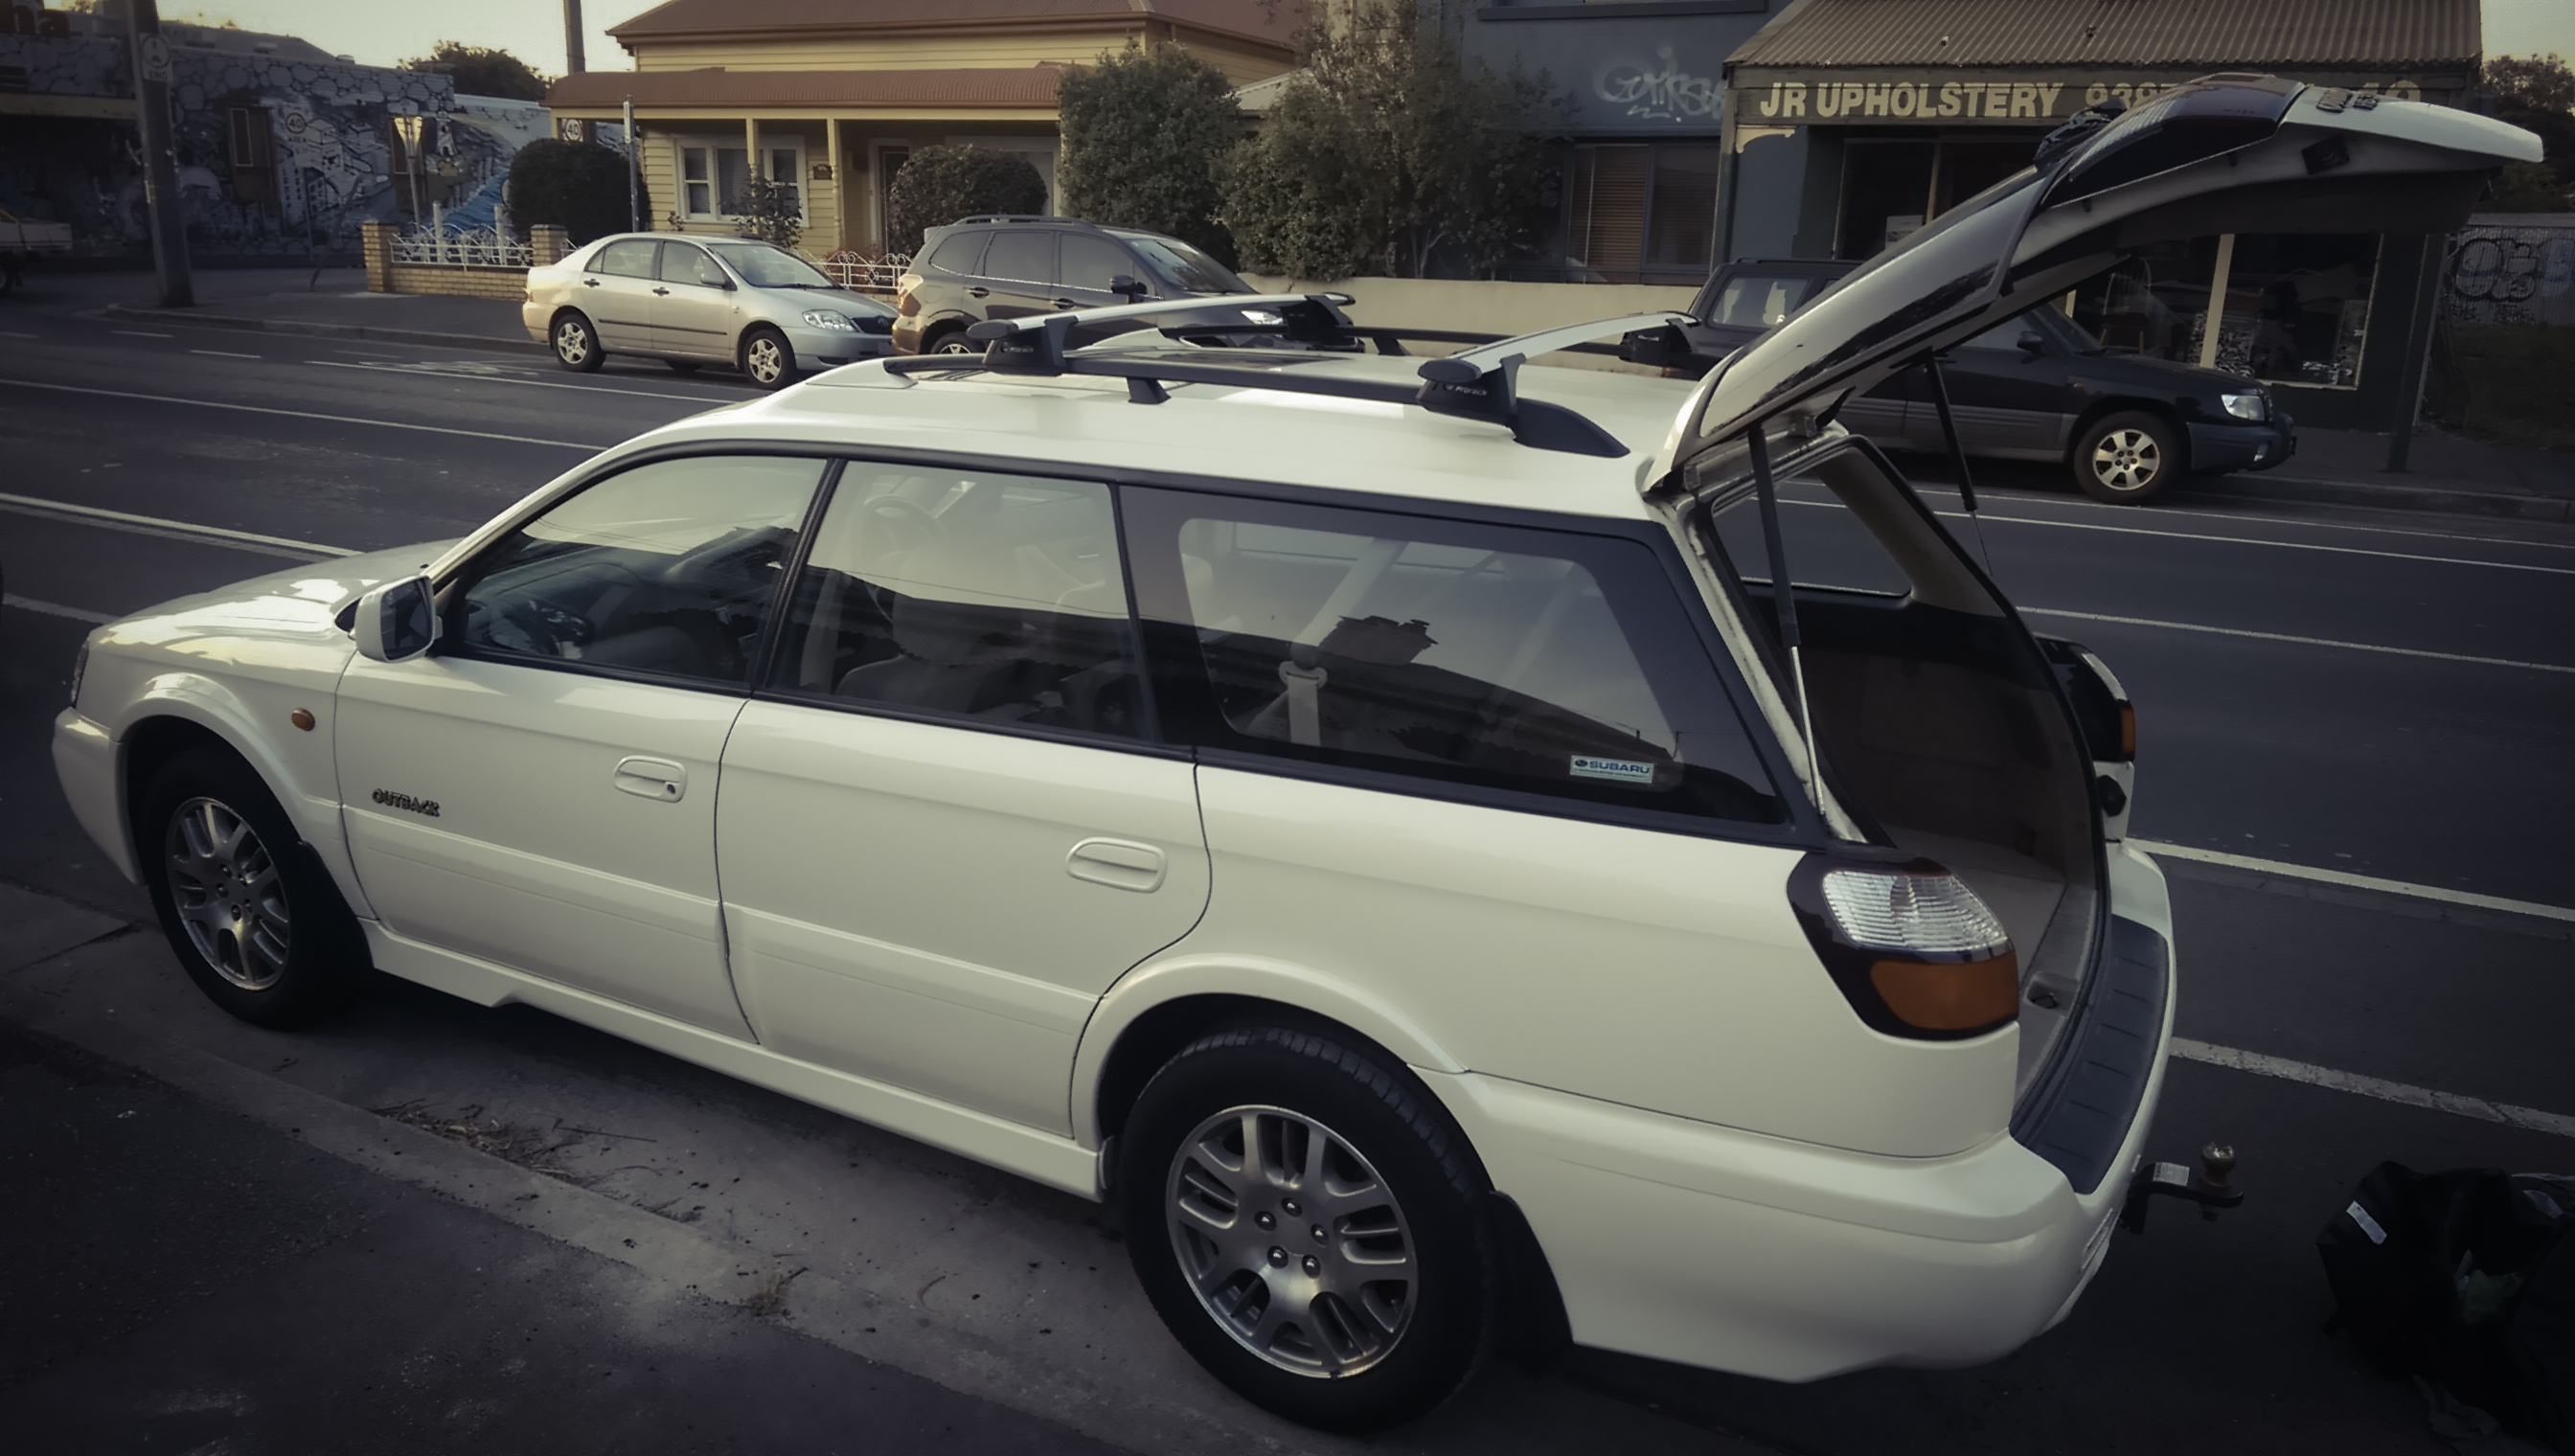 Picture of Rhys' 2002 Subaru Outback